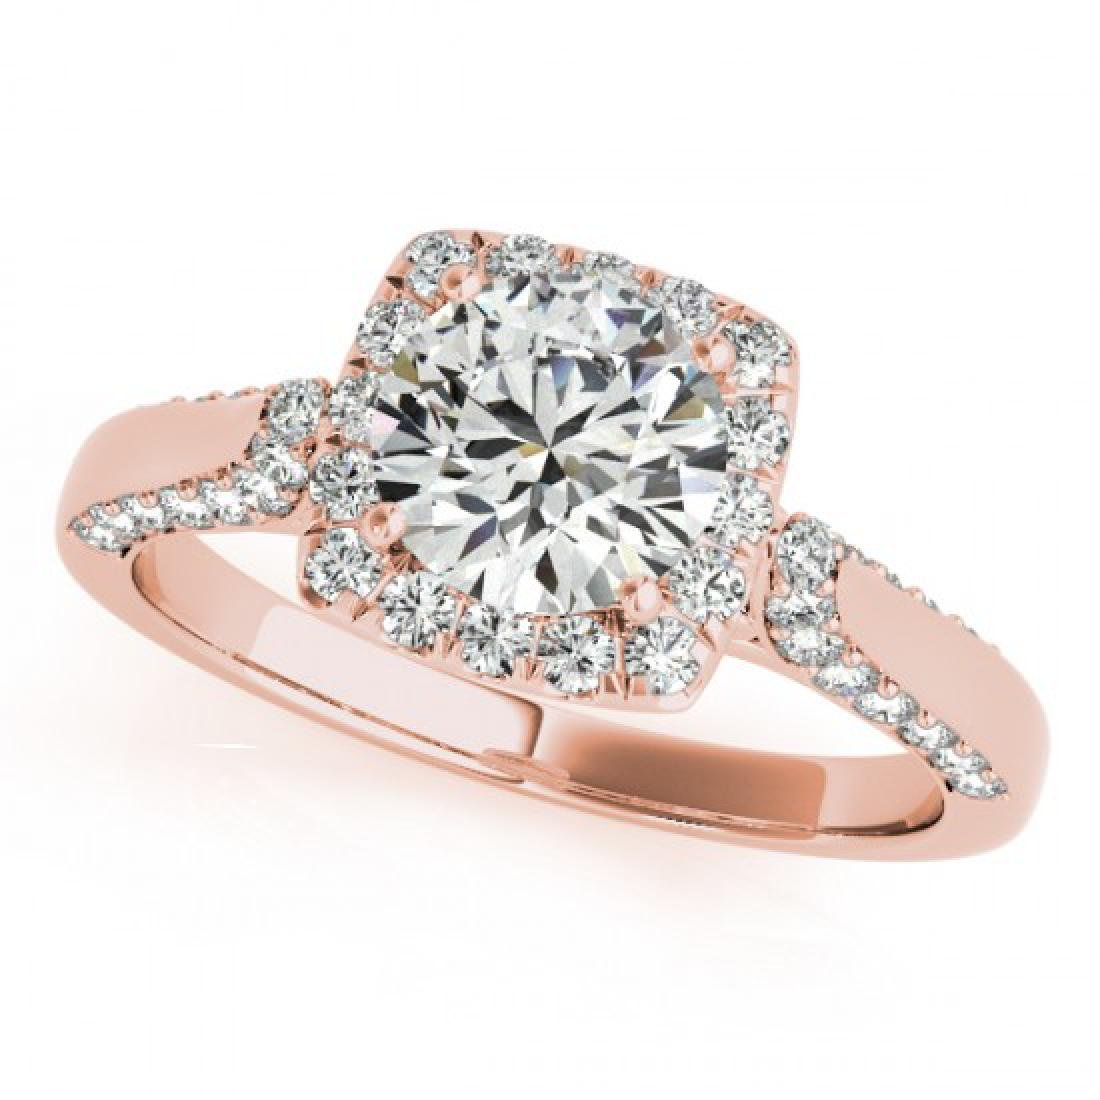 1.08 CTW Certified VS/SI Diamond Solitaire Halo Ring